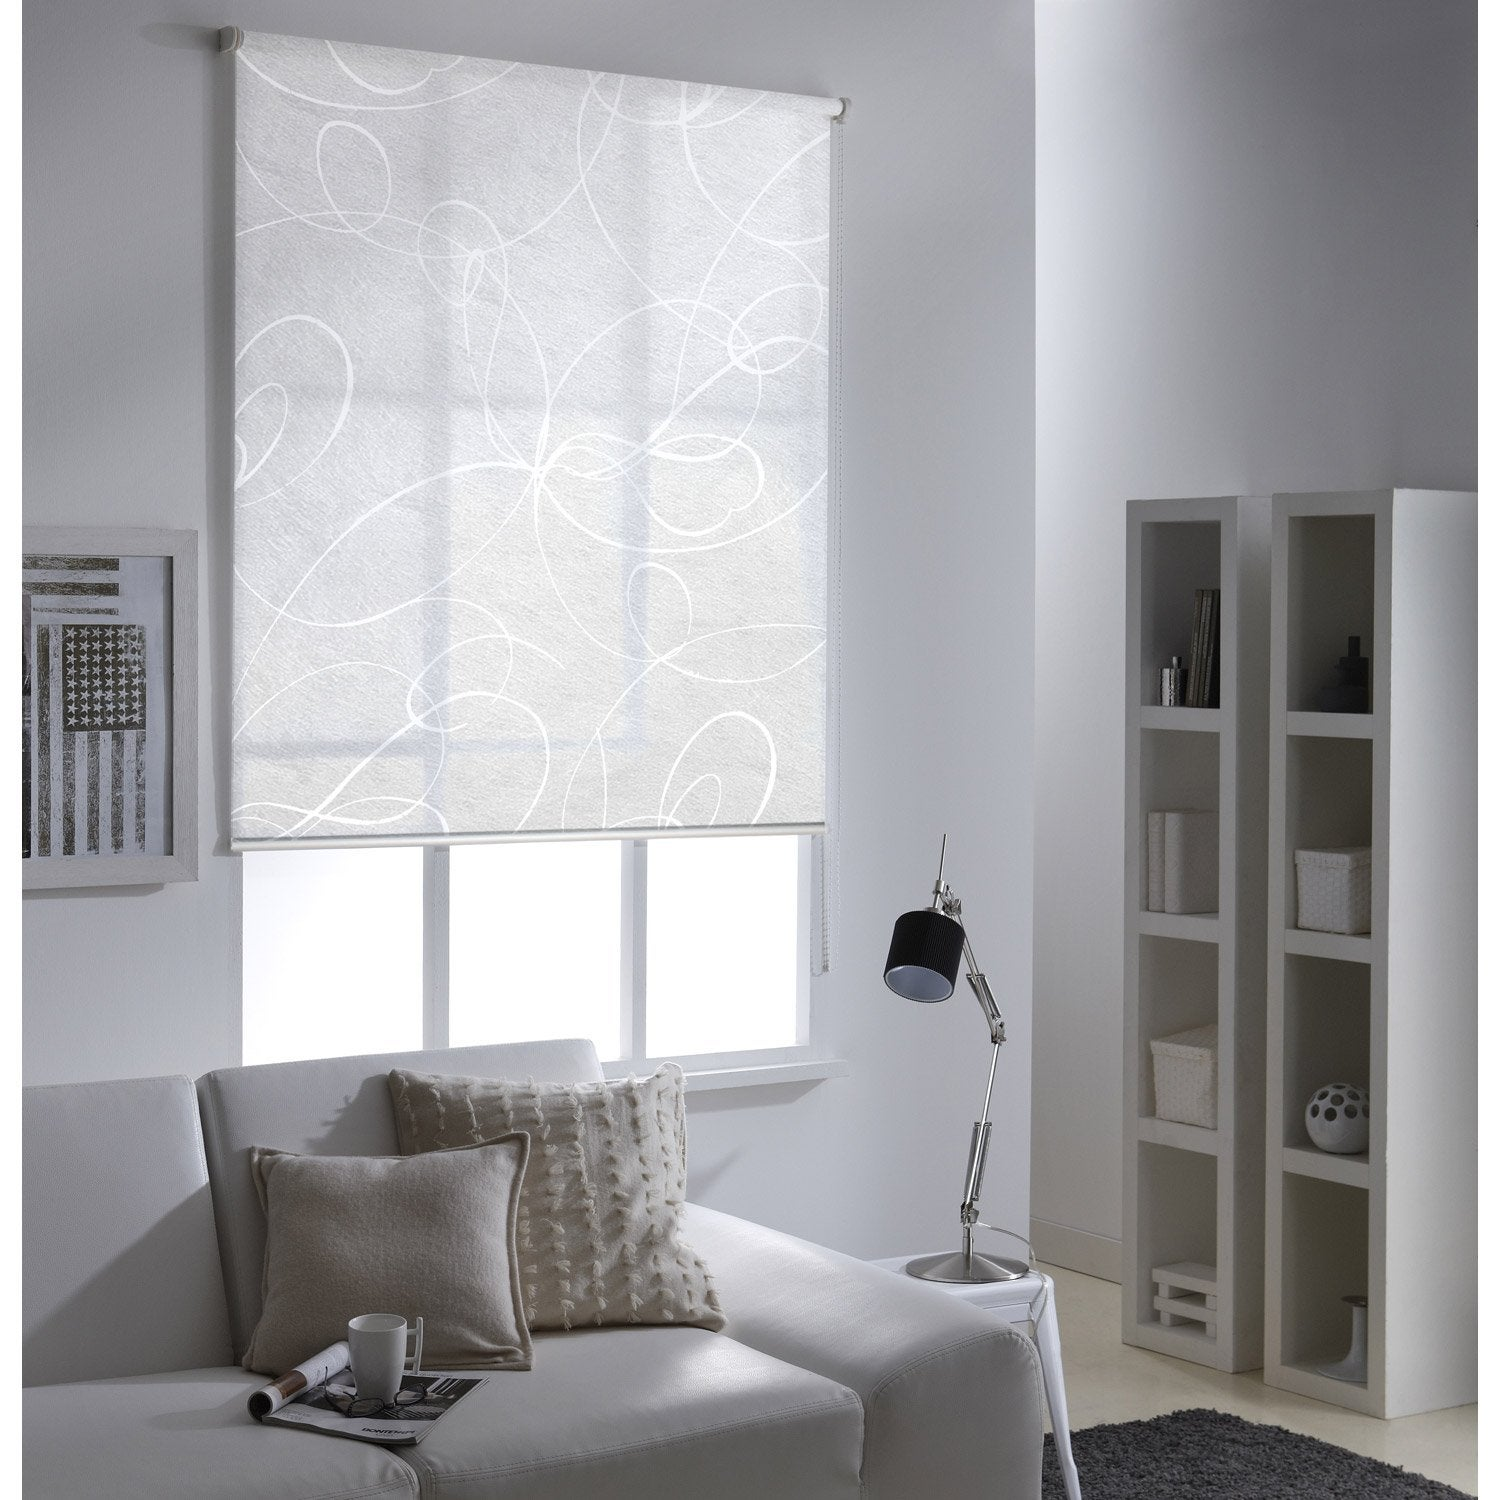 store enrouleur tamisant frost imprim blanc 155x190 cm. Black Bedroom Furniture Sets. Home Design Ideas